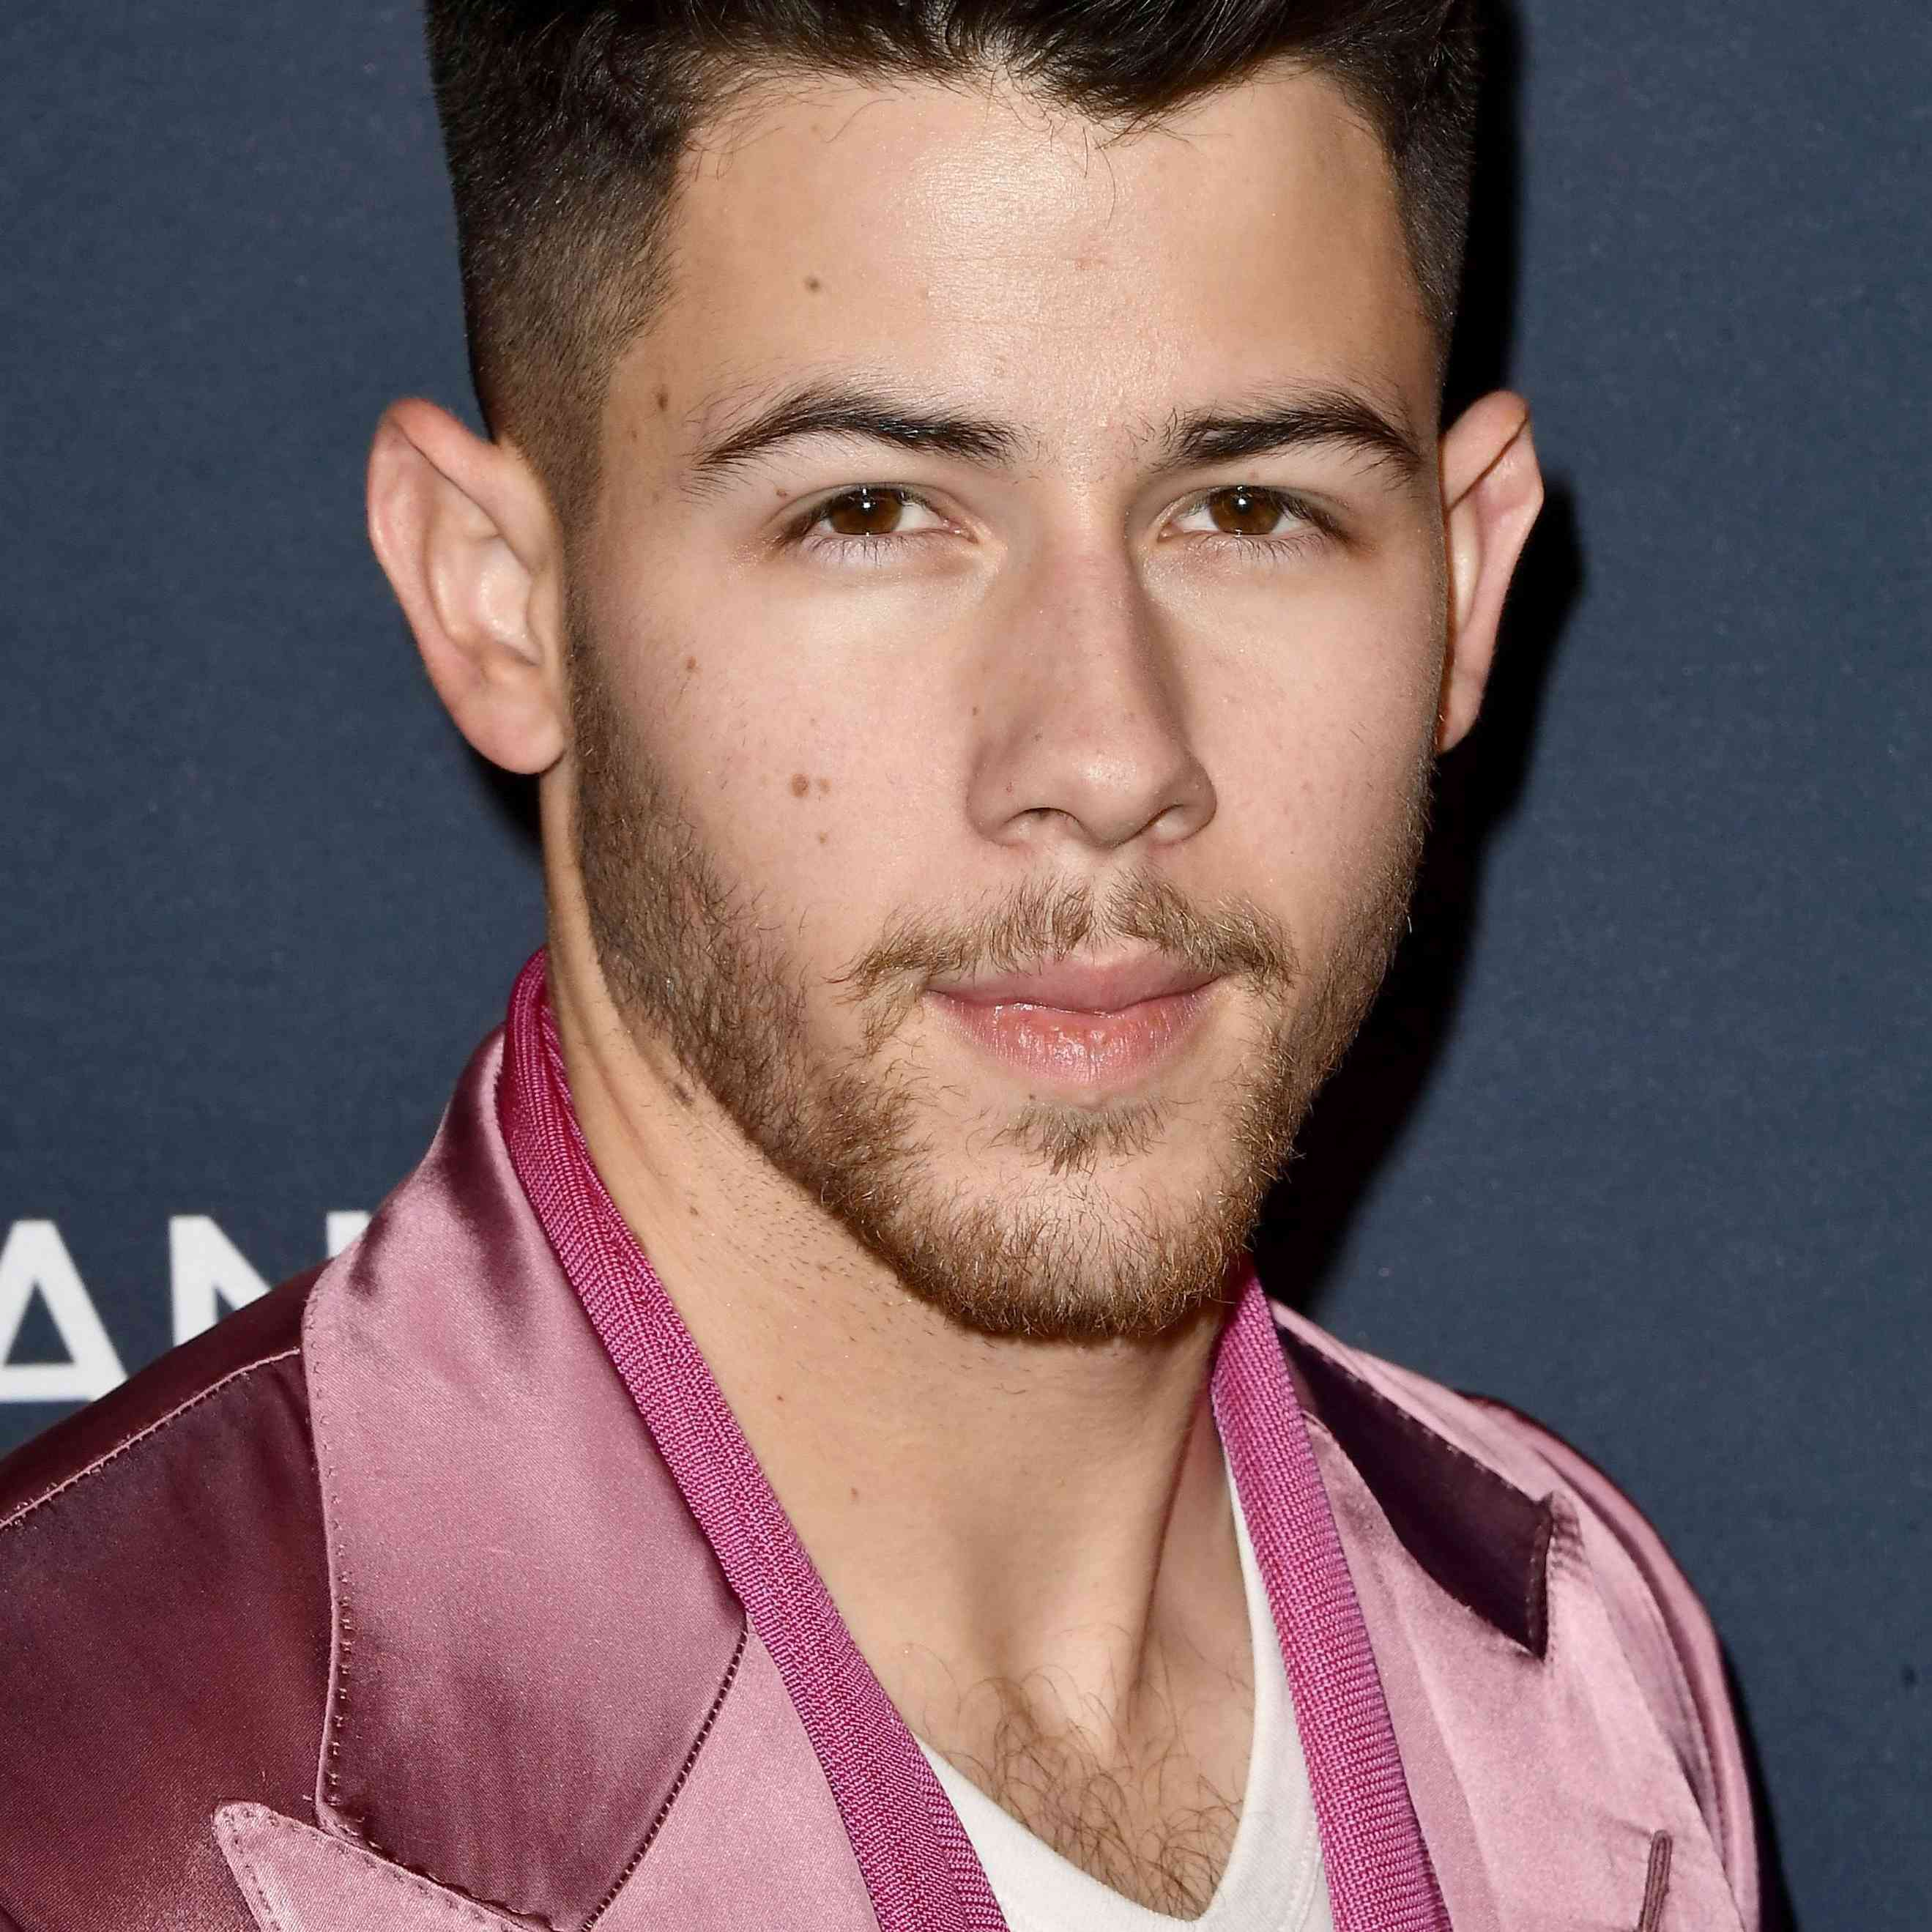 Nick Jonas at The Women's Cancer Research Fund's Unforgettable Evening 2020